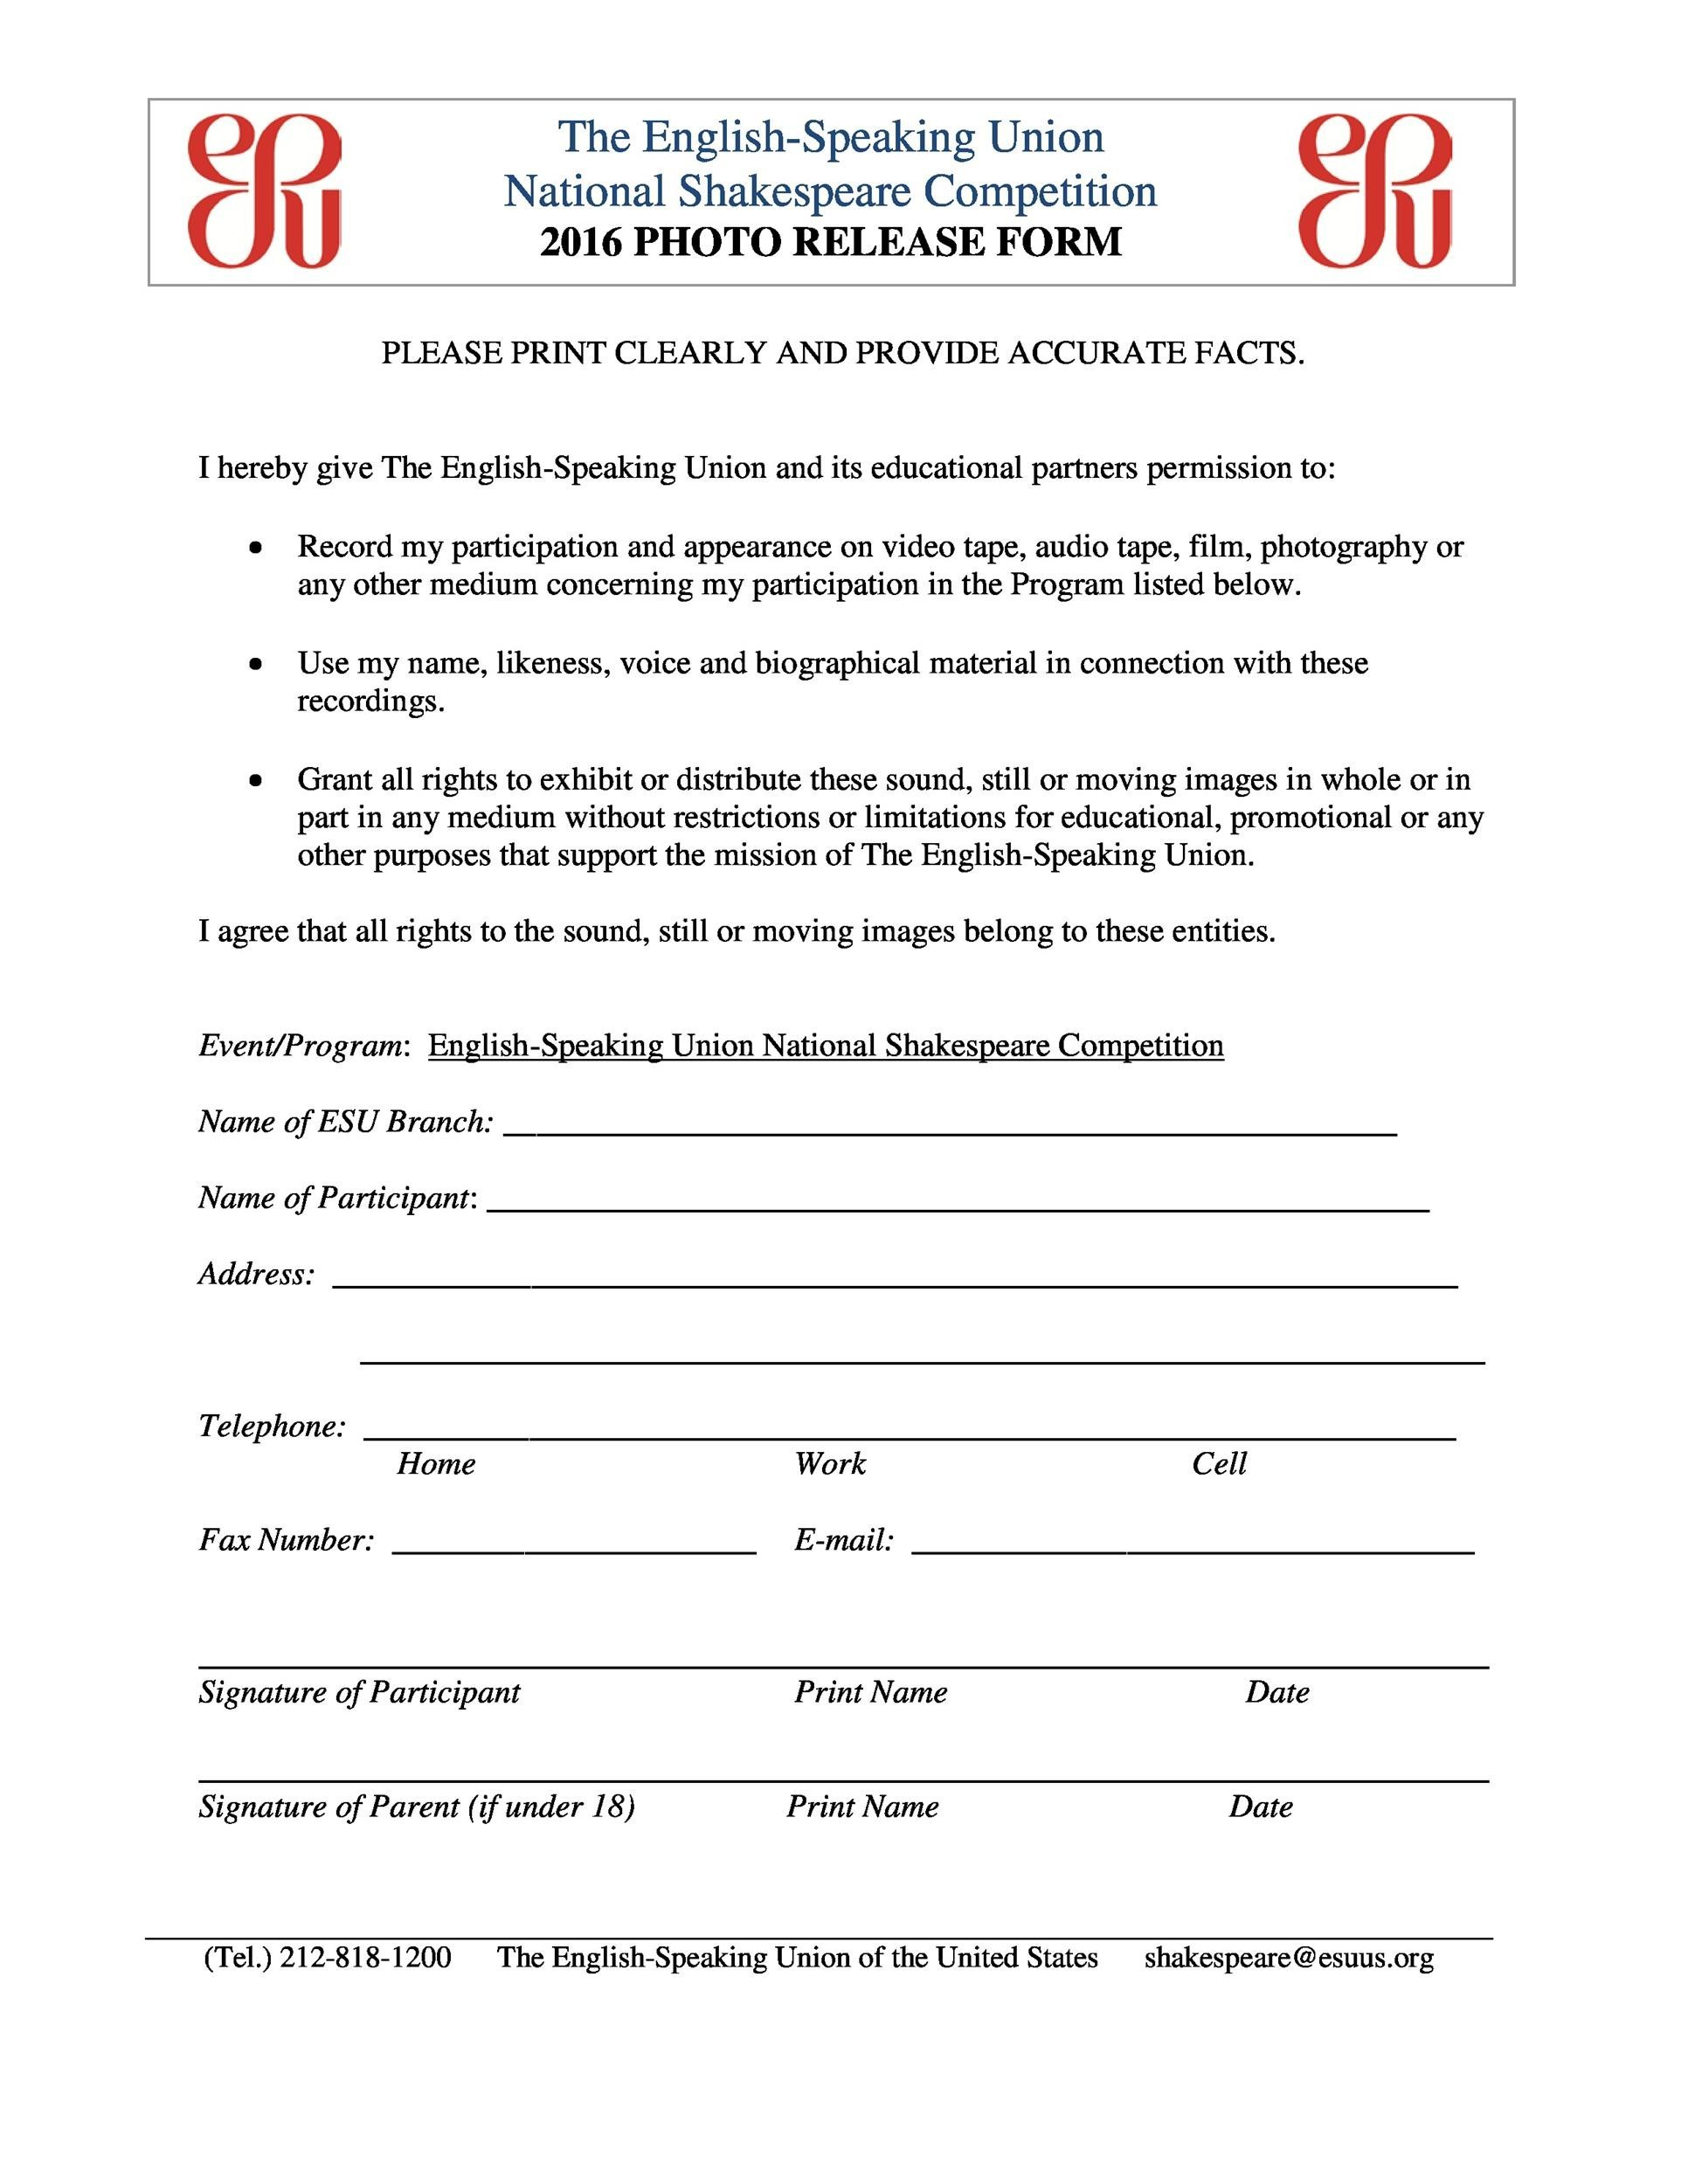 Free photo release form 20